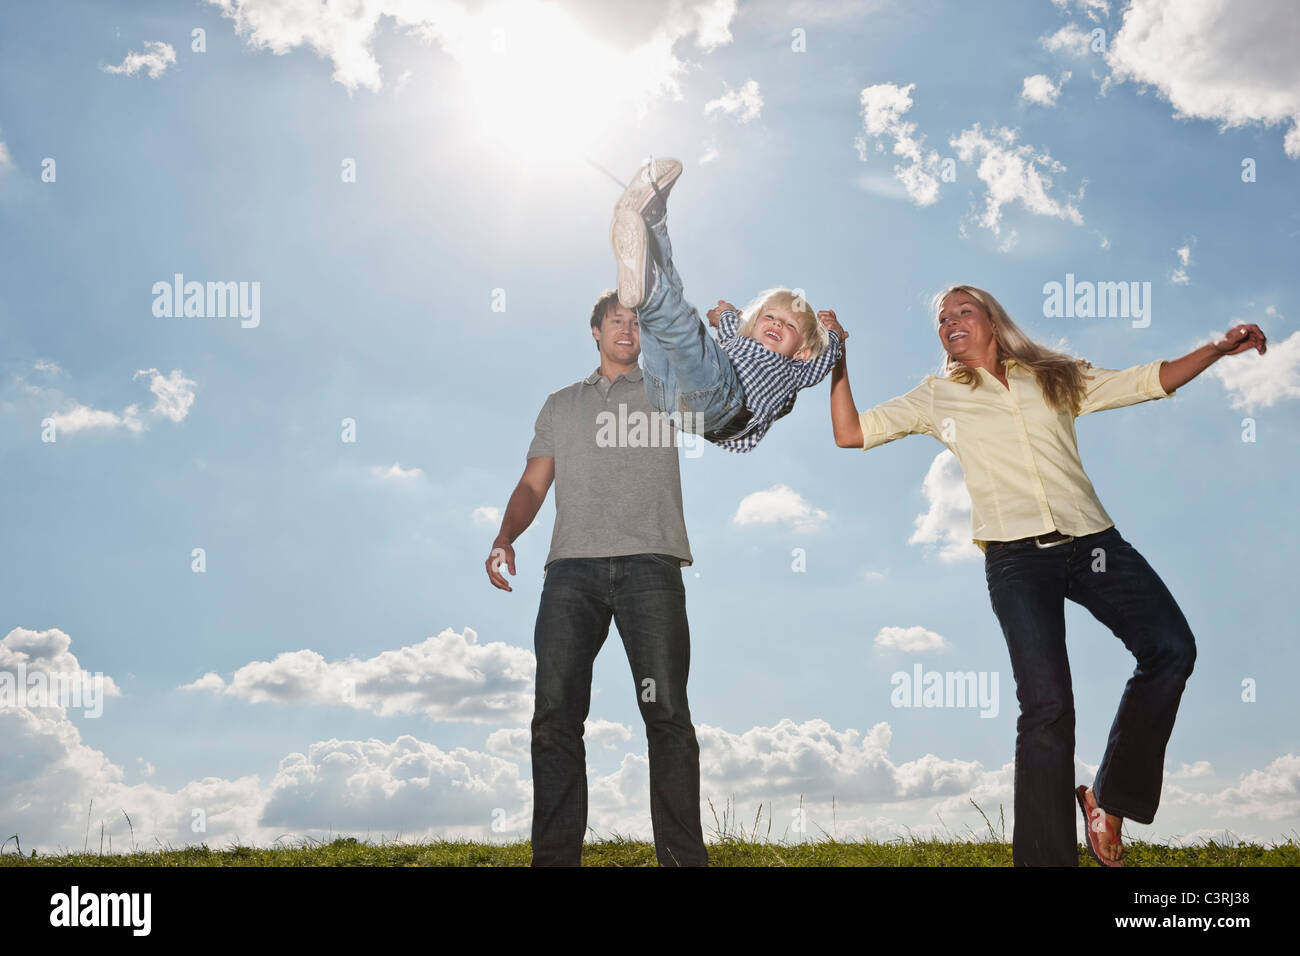 Germany, Cologne, Parents playing with their son (2-3 Years), smiling - Stock Image